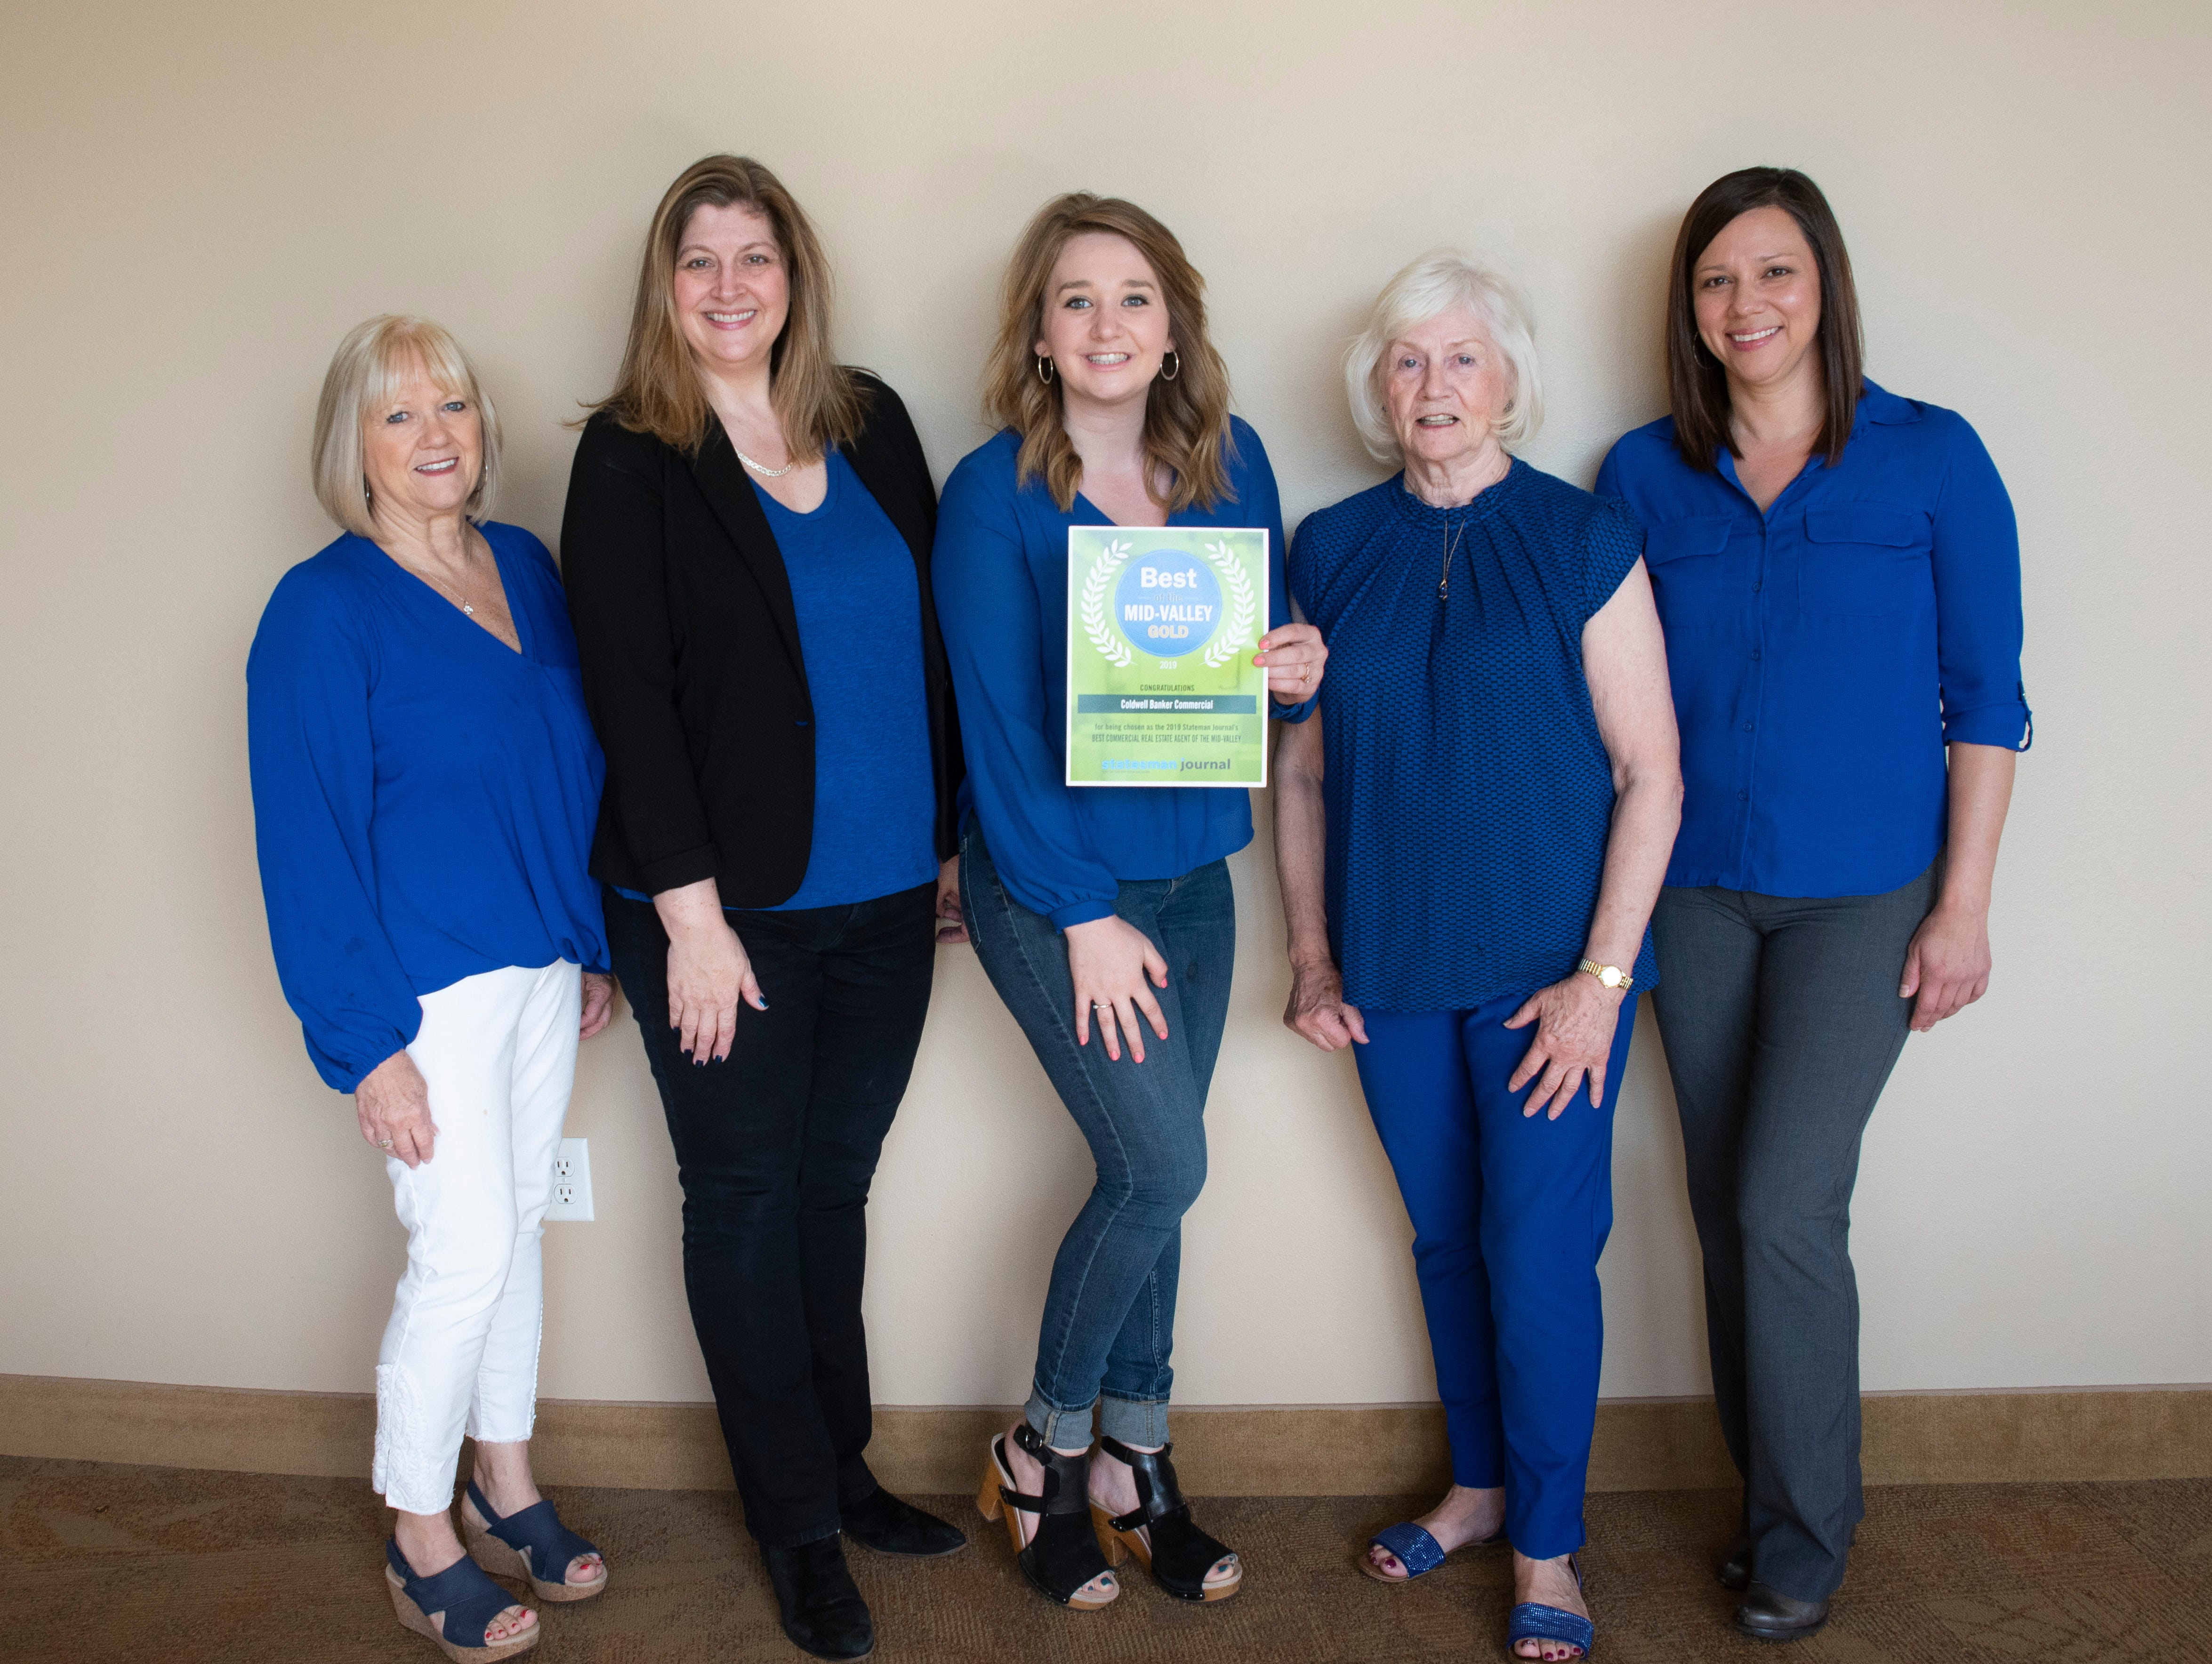 Coldwell Banker Commercial won gold for Best Commercial Rest Estate Agent in the 2019 Best of the Mid-Valley.